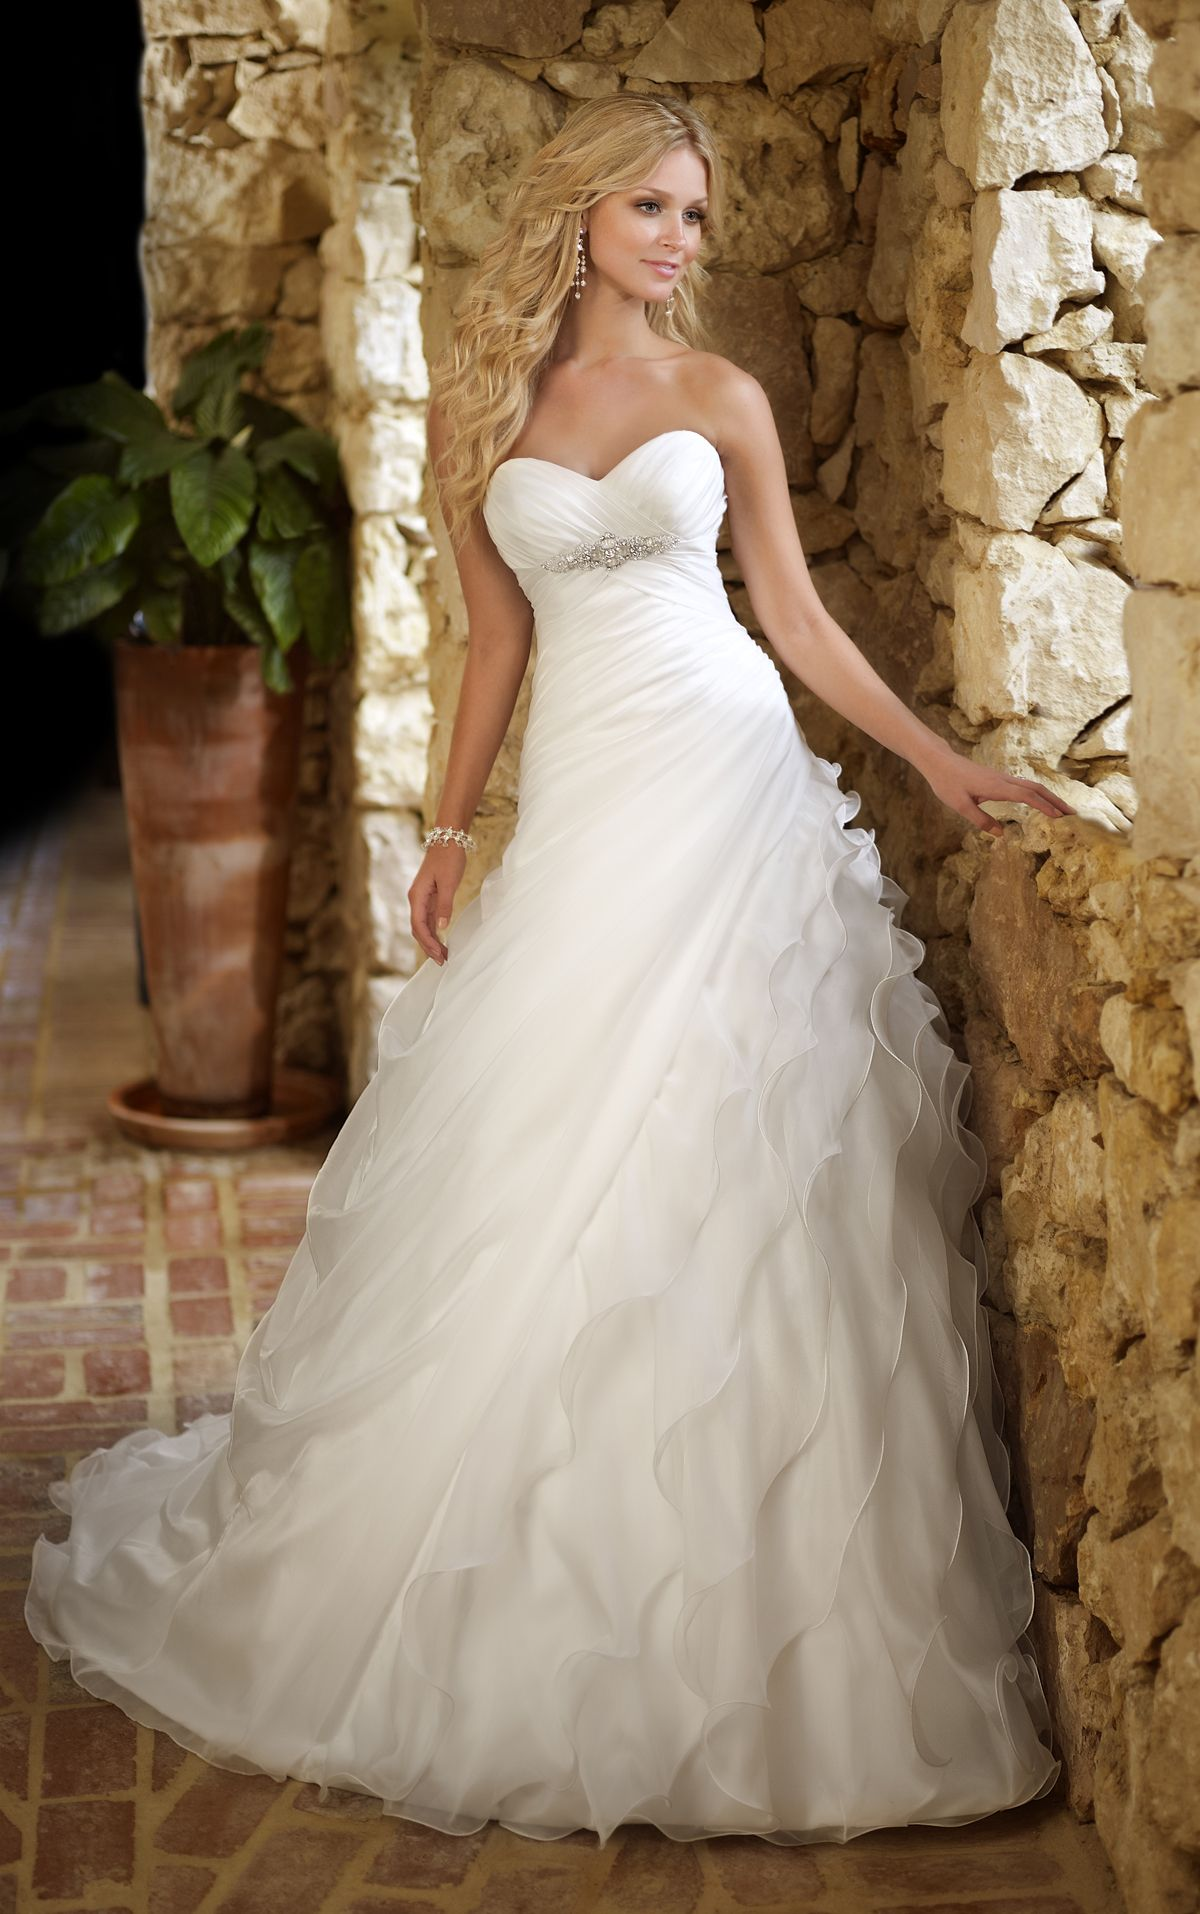 Custom wedding dress designers  Sophisticated bridal gowns with sleeves feature an A line silhouette